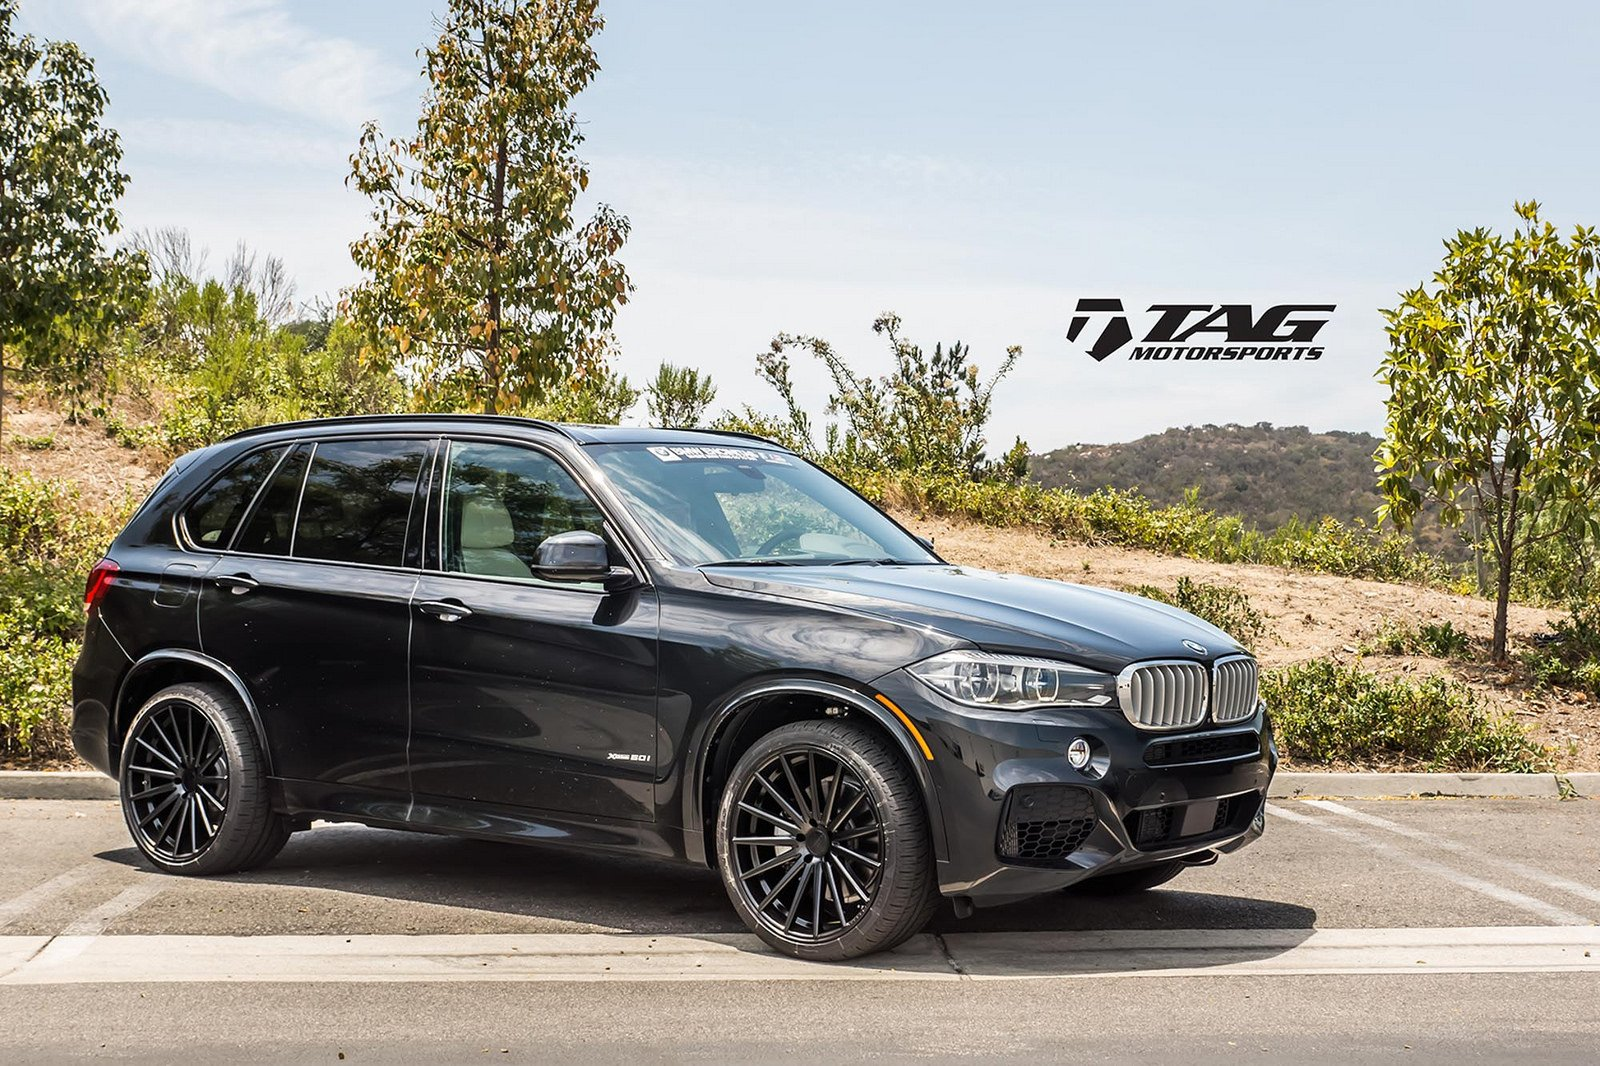 BMW-X5 Wheels cars suv black wallpaper | 1600x1066 ...